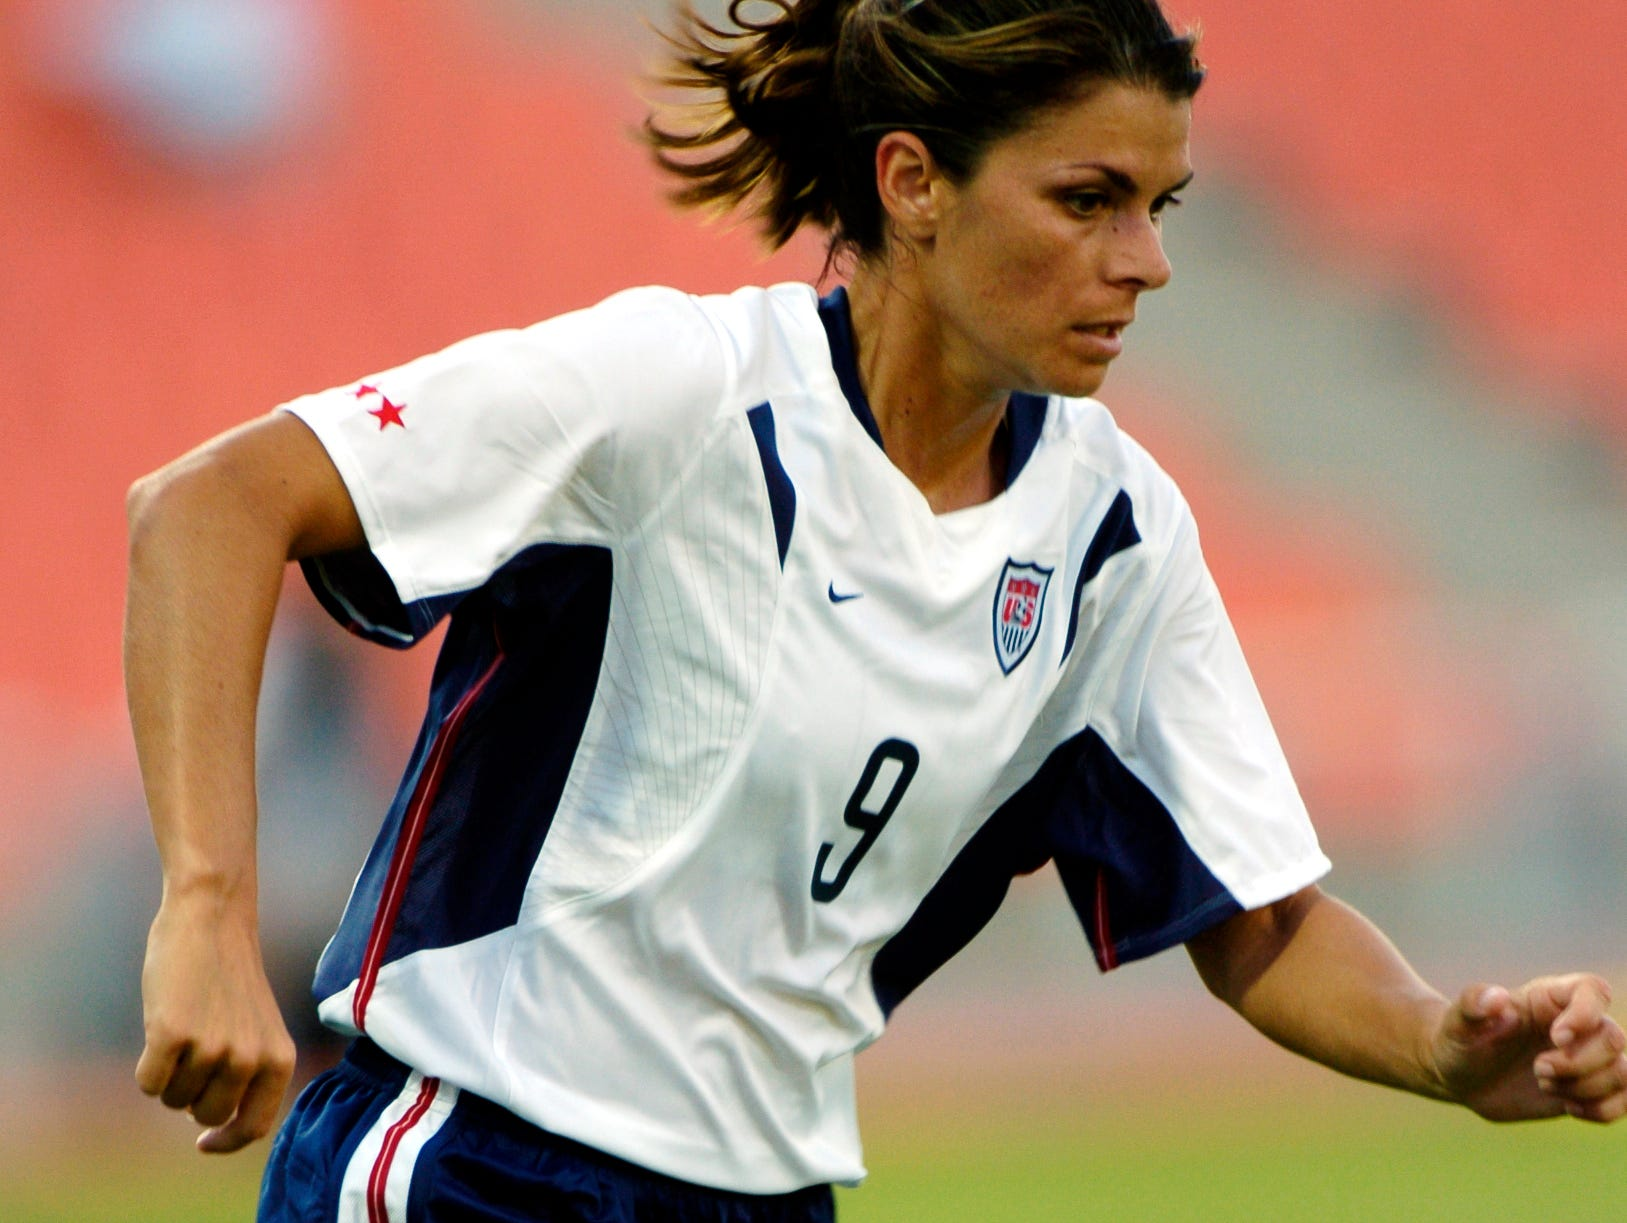 Mia Hamm is a two-time gold medalist with the U.S. women's soccer team.